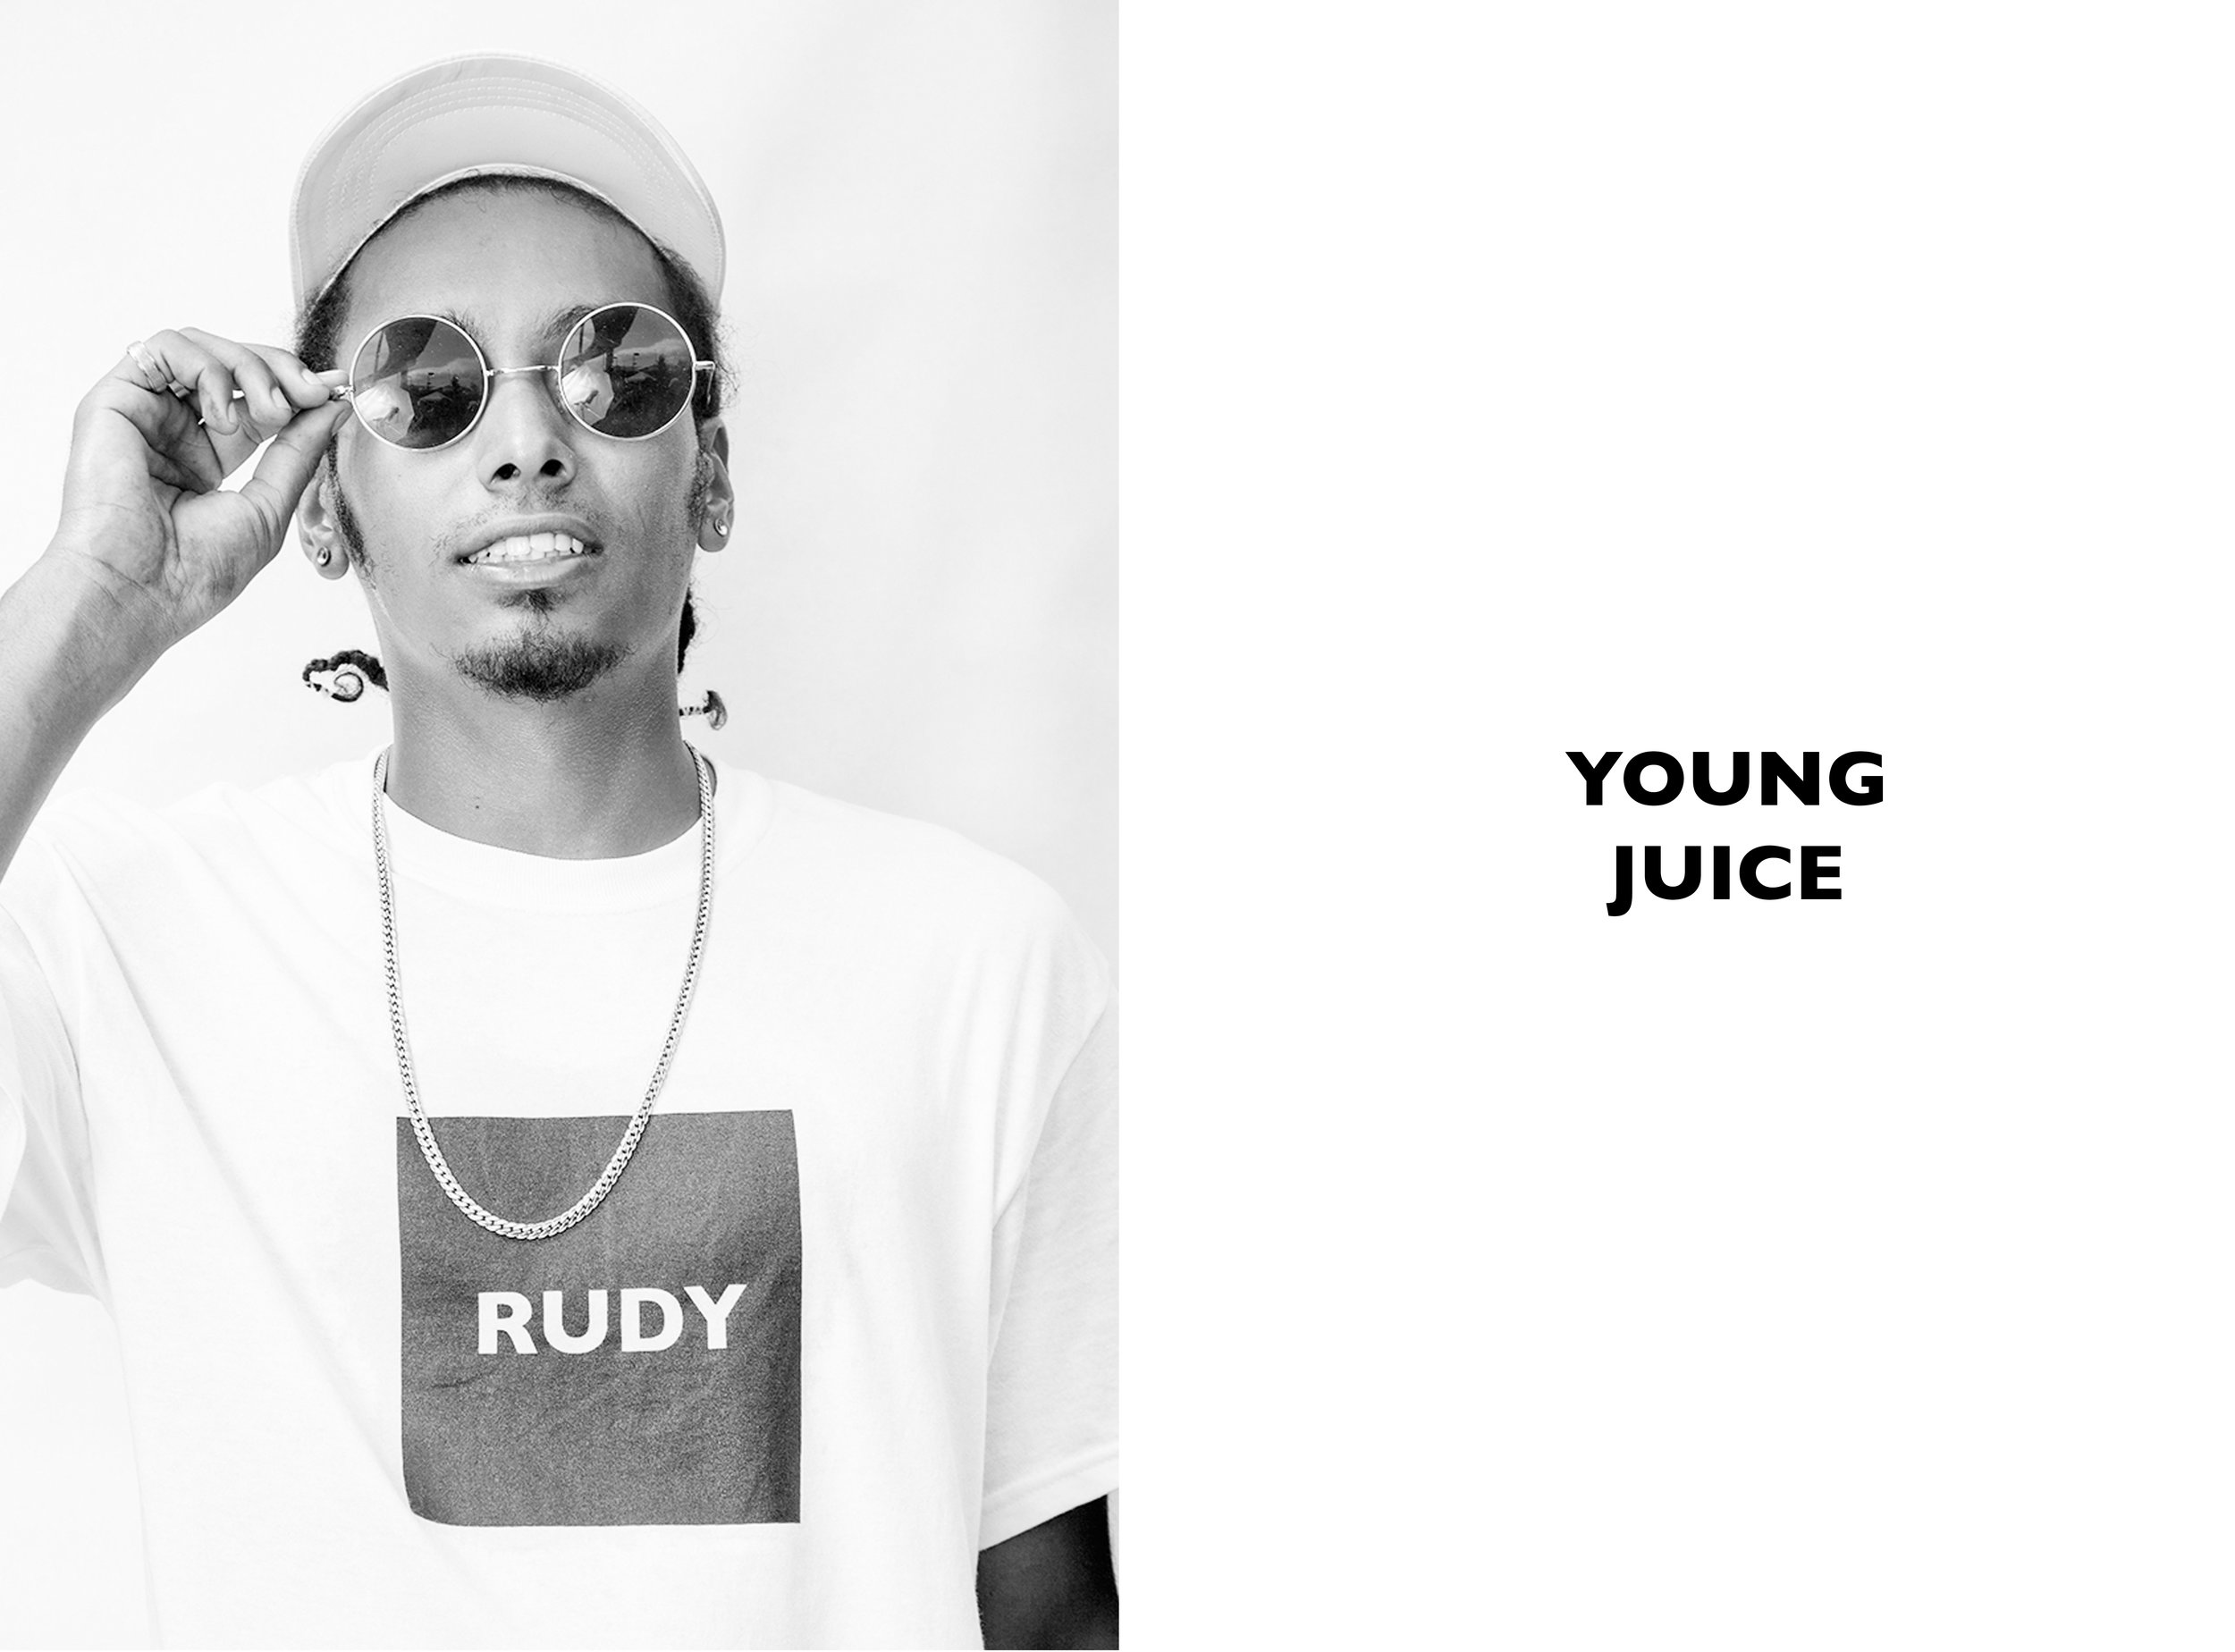 YOUNG-JUICE-TEAM-PROFILE.jpg